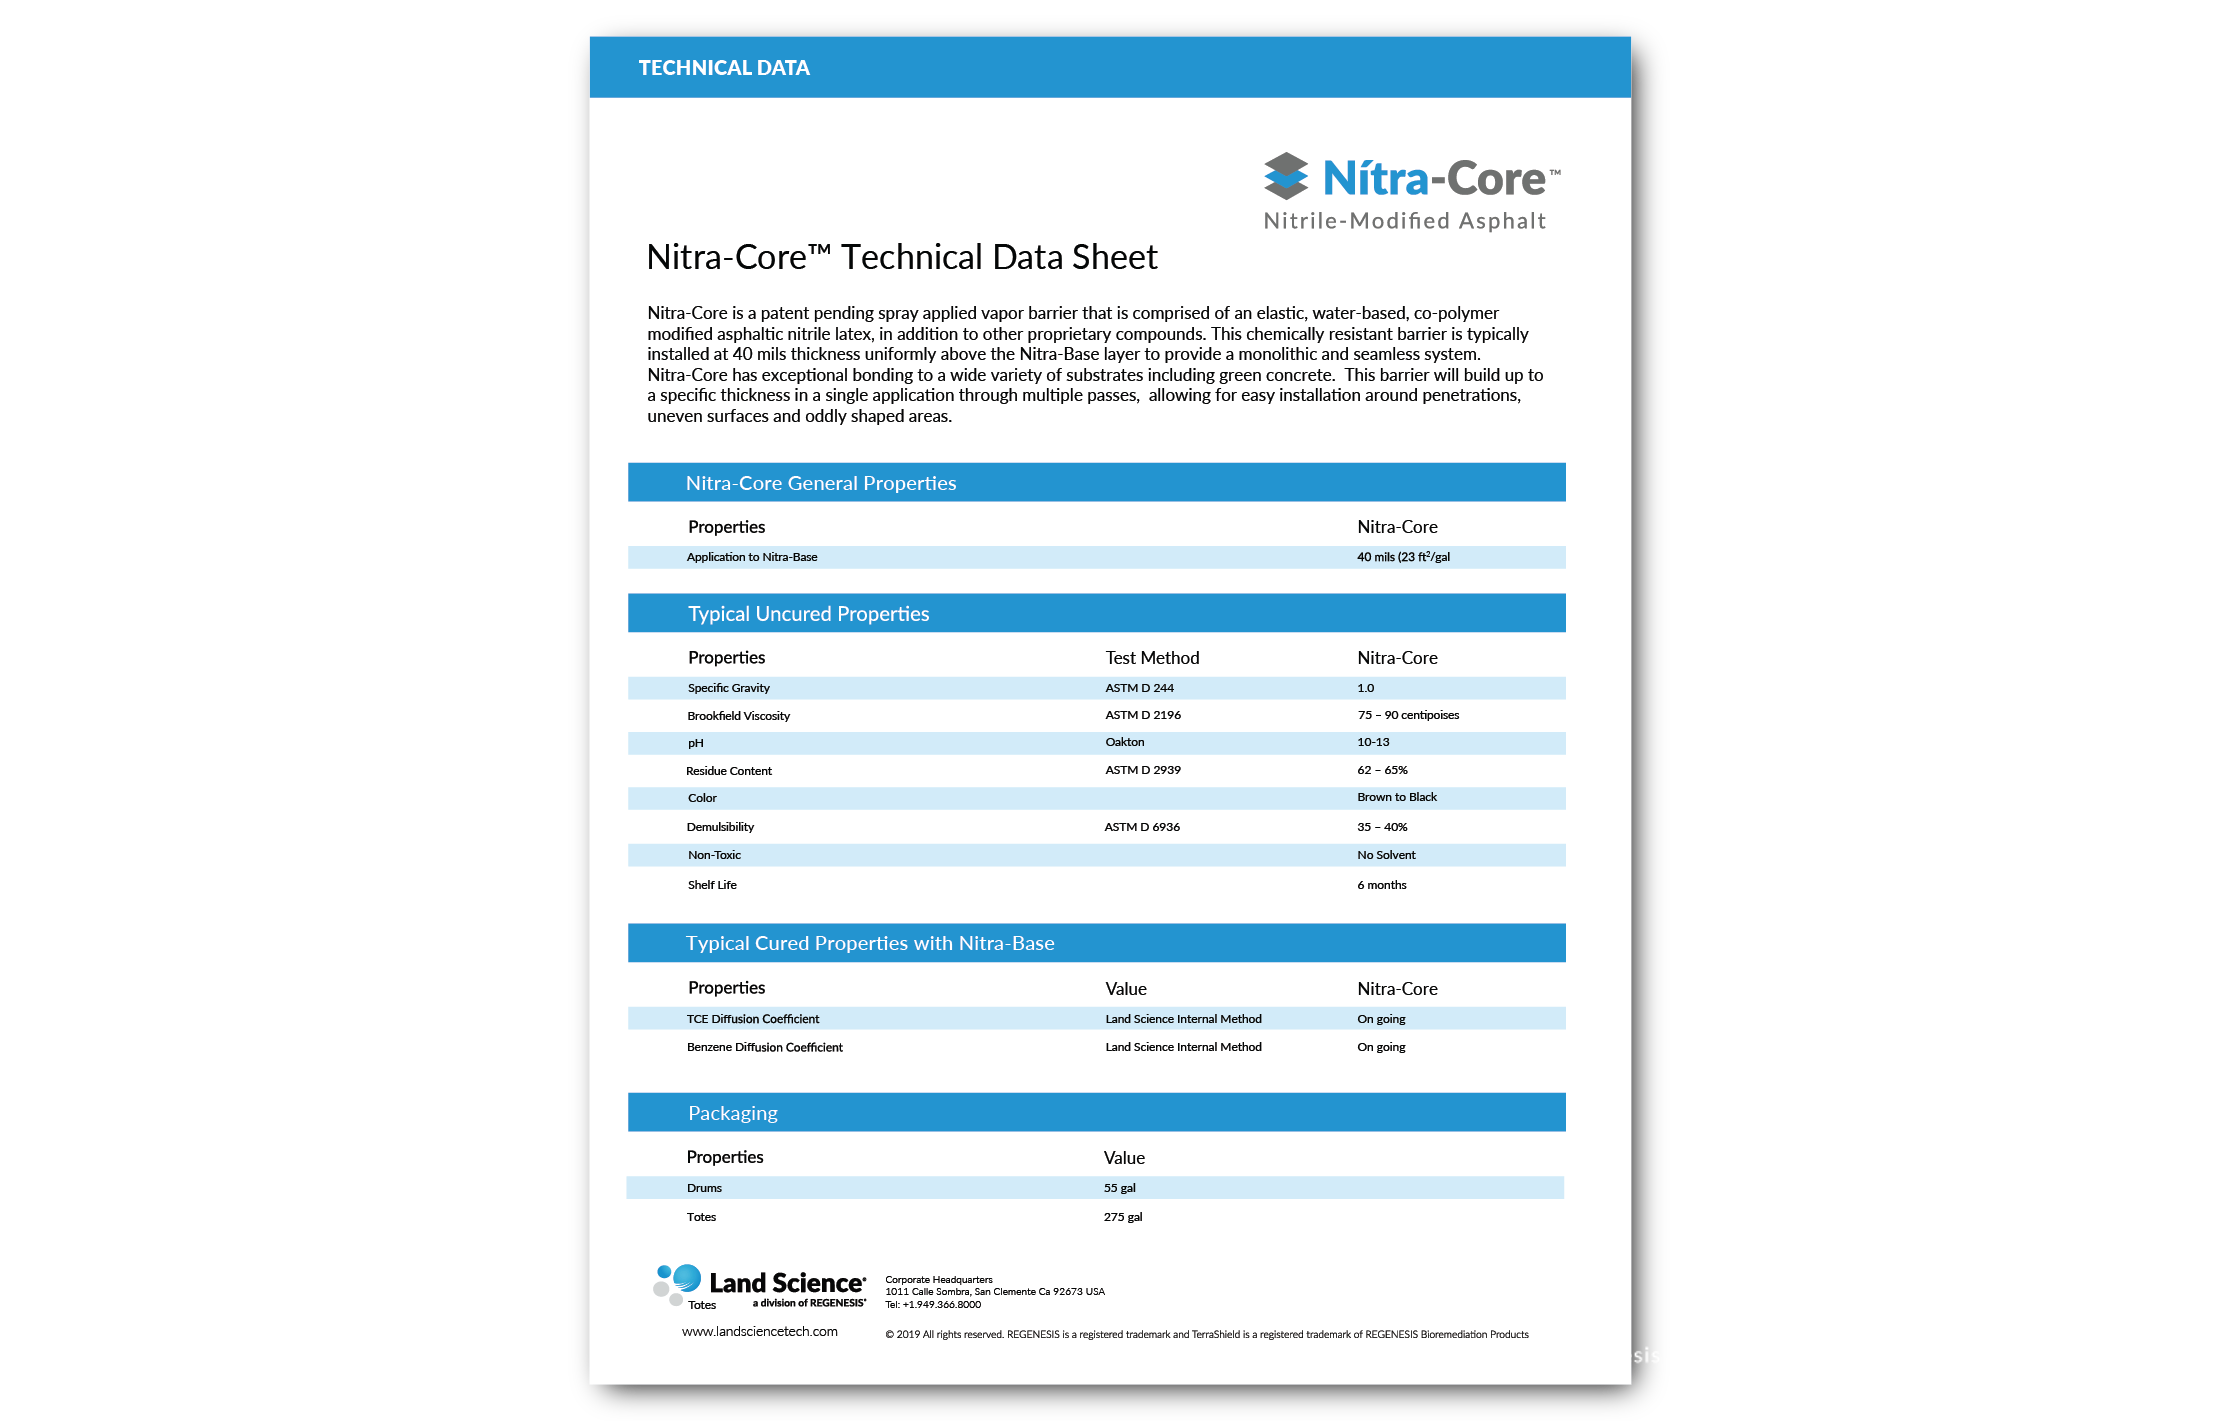 Nitra-Core Technical Data Sheet